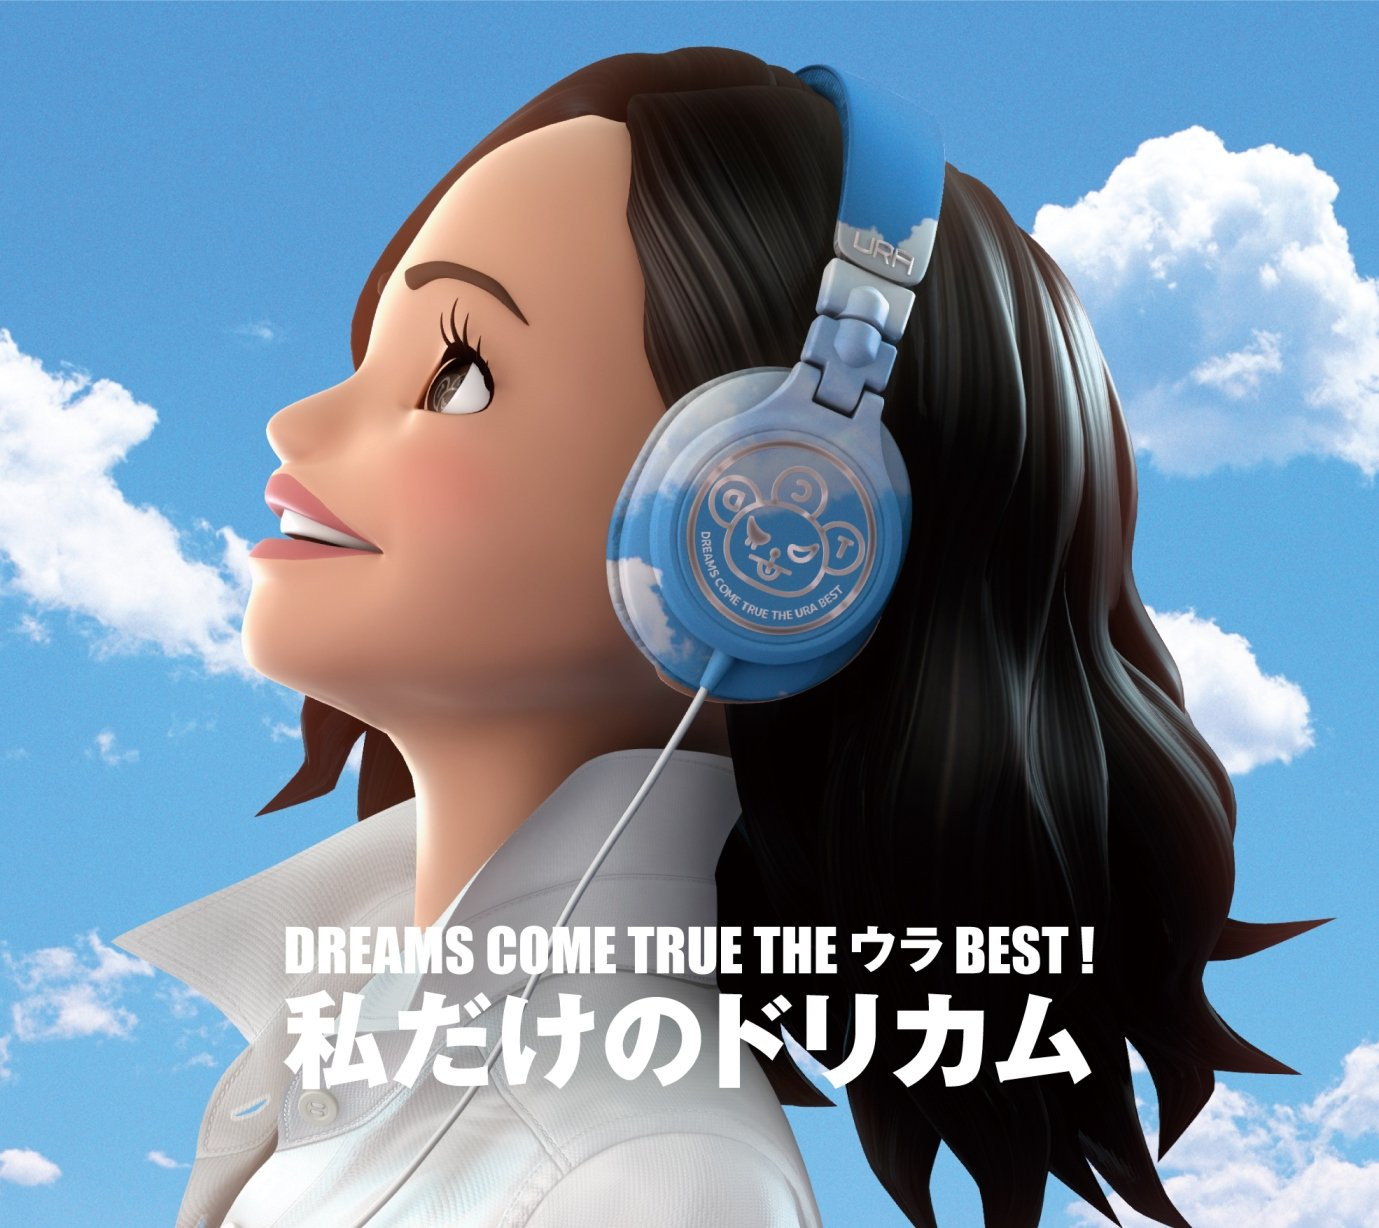 NekoPOP-Dreams-Come-True-URA-Best-review-1